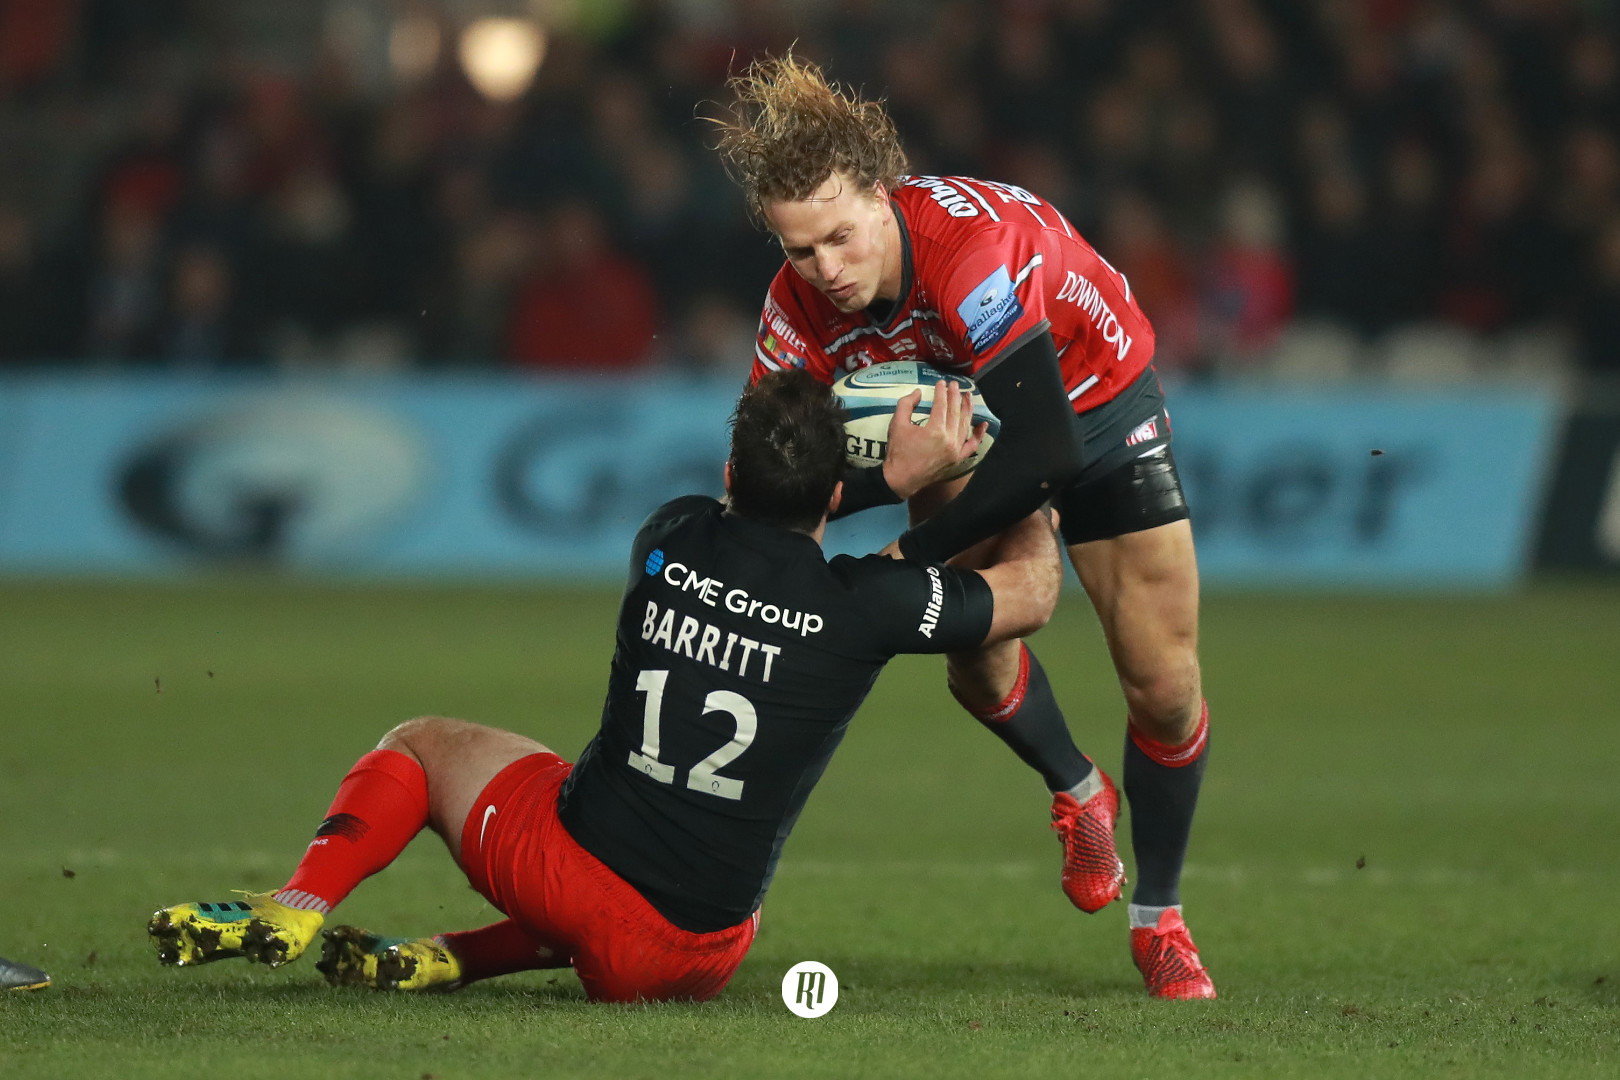 Match Analysis: Gloucester vs Saracens